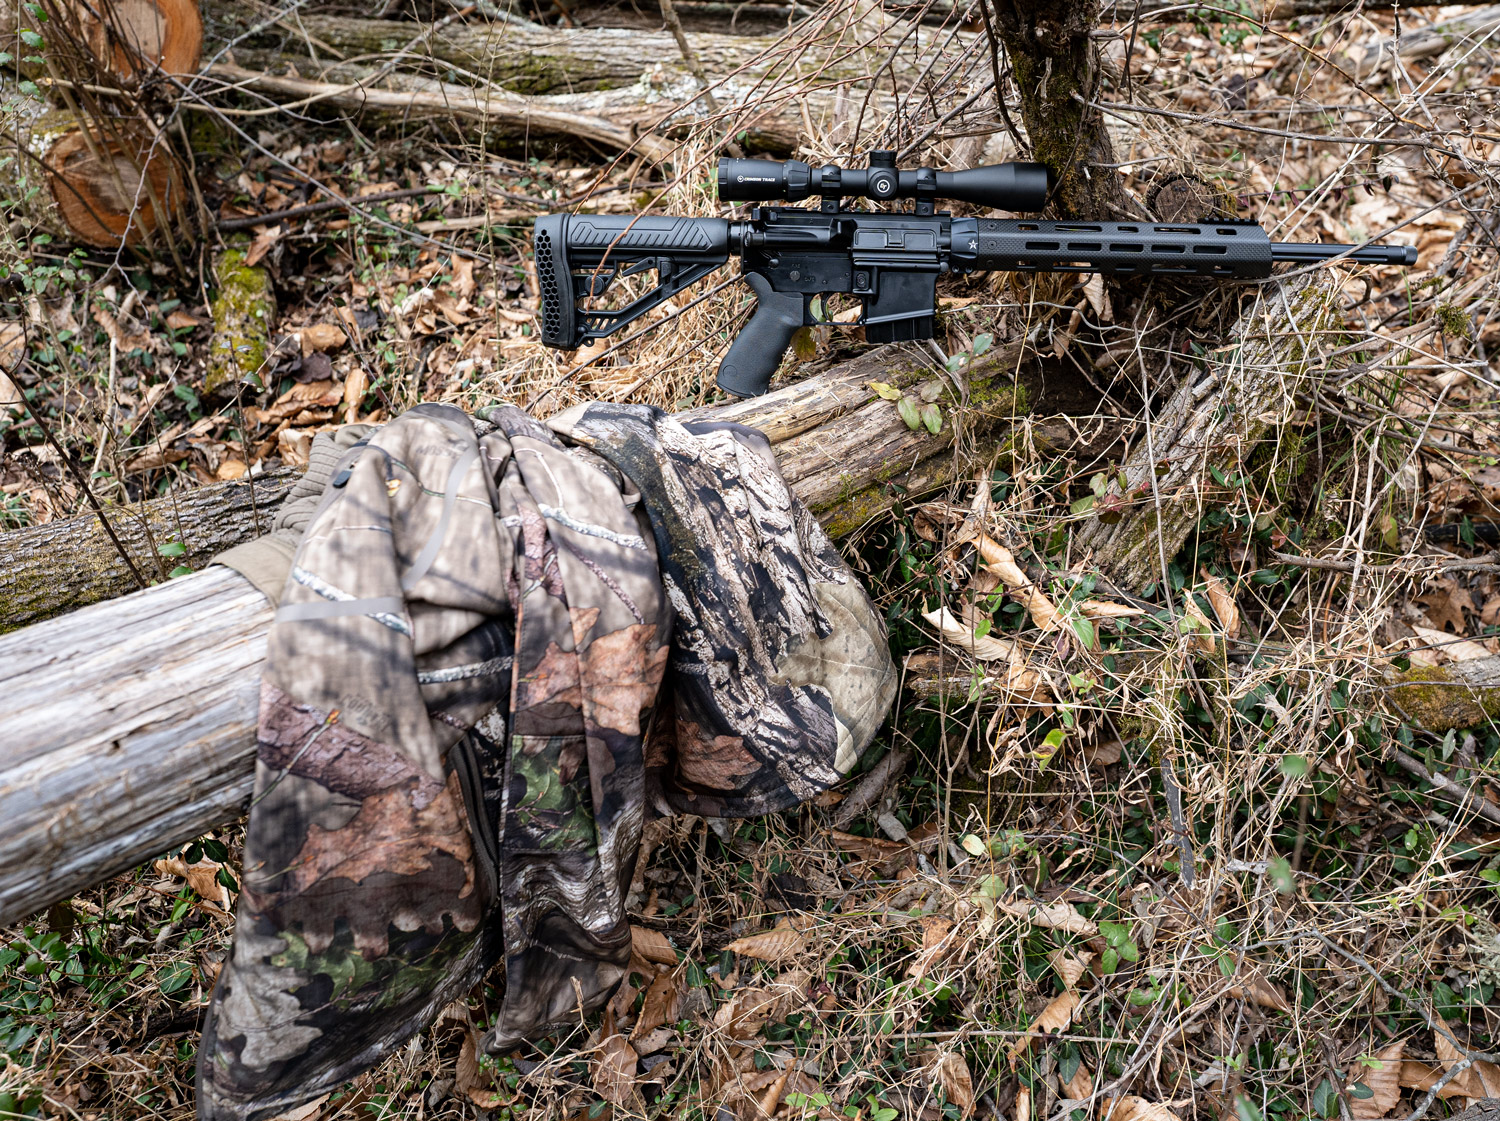 A 6.5 Grendel rifle in the woods